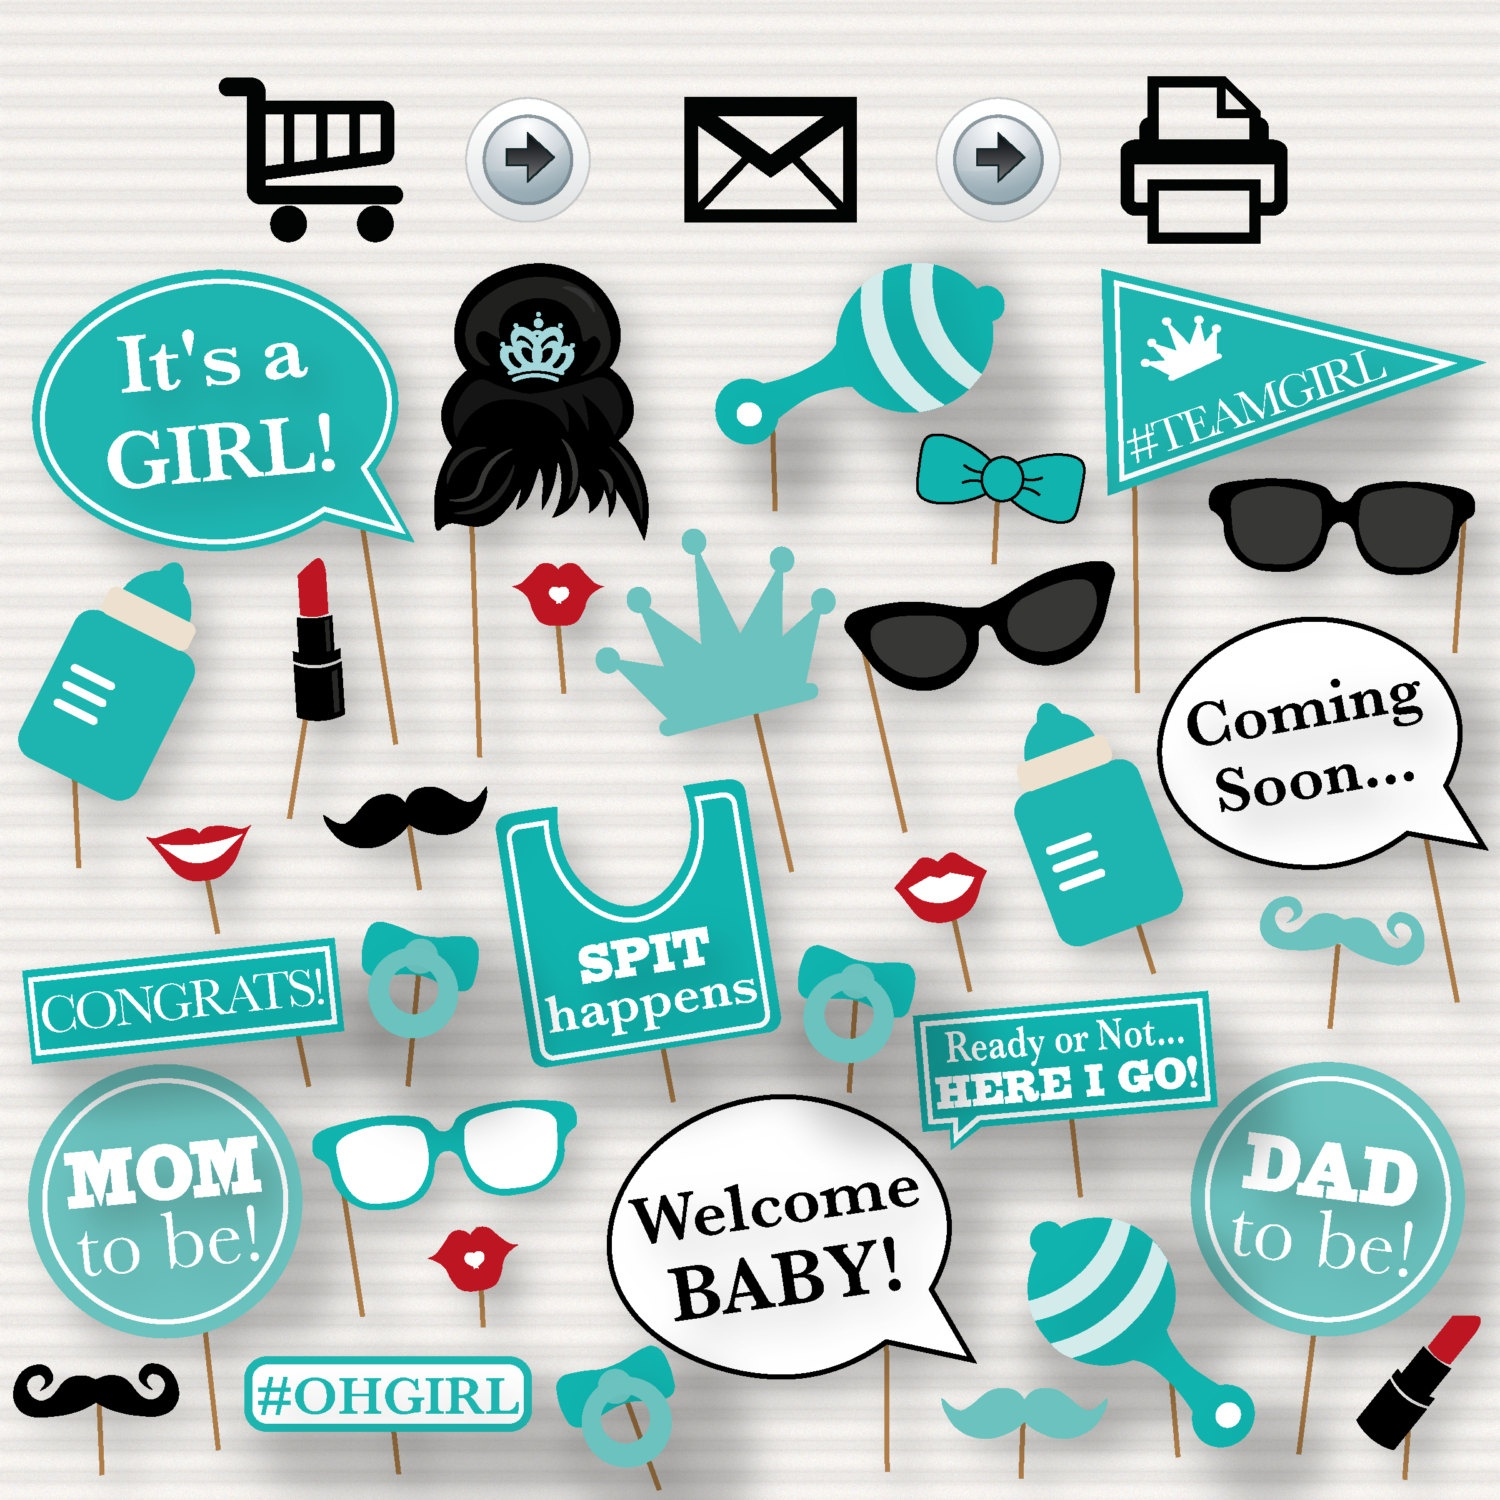 Baby Shower Printable Photo Booth Props Tiffany's Baby   Etsy - Free Printable Boy Baby Shower Photo Booth Props